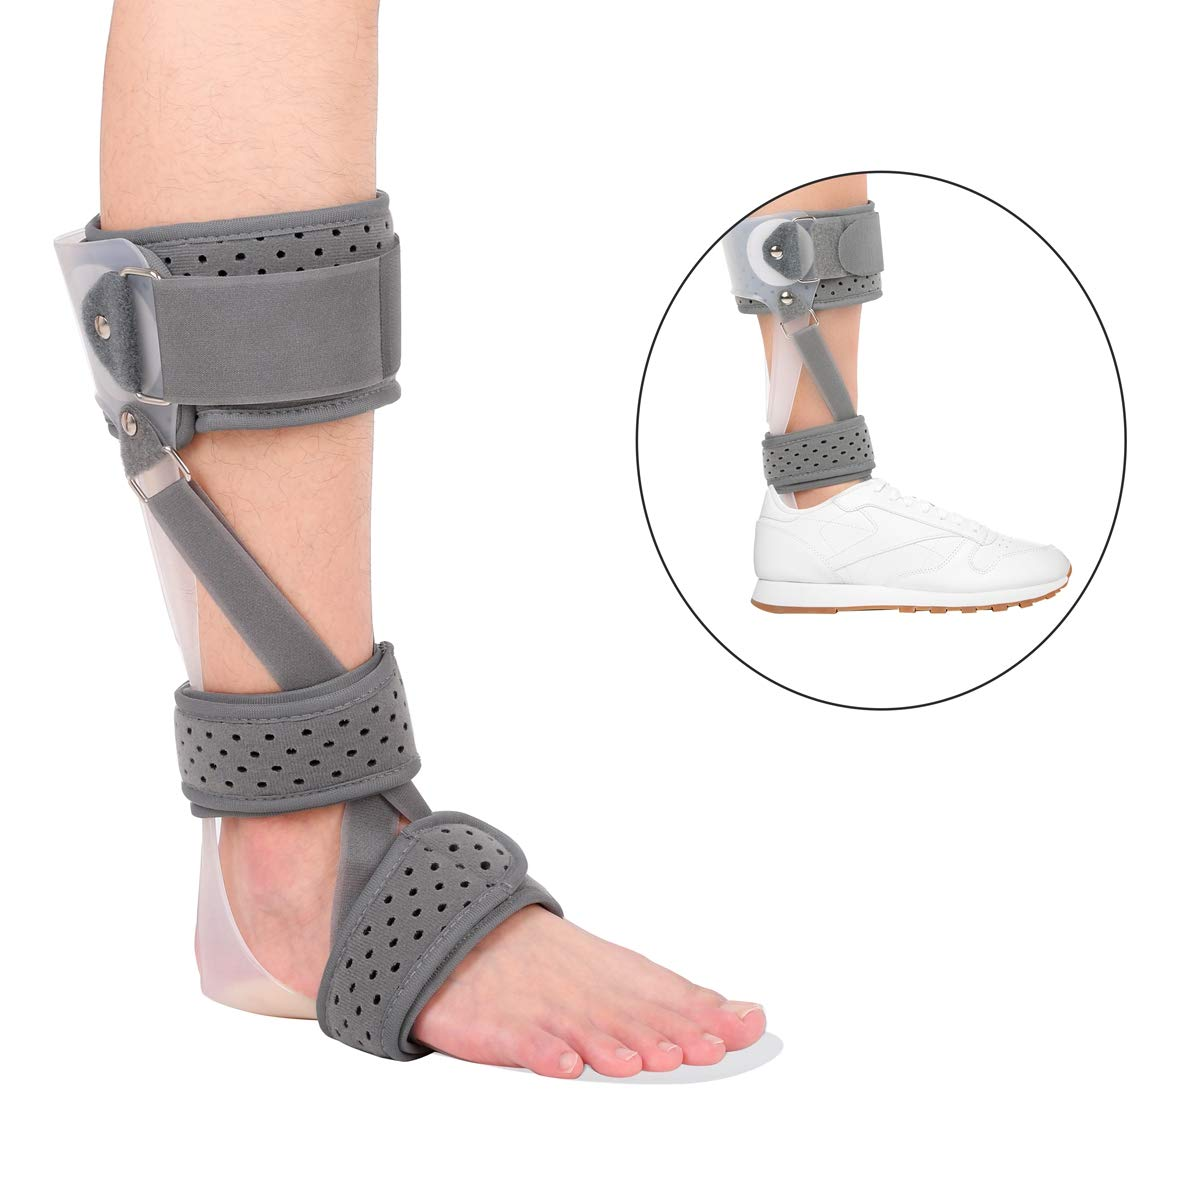 Foot Drop Splint, 3 in 1 AFO Ankle Orthosis Foot Drop Brace Orthopedic Shoe Foot Postural Correction Brace Splint Leaf Stroke Hemiplegia Rehabilitation (Large, Right) by Furlove